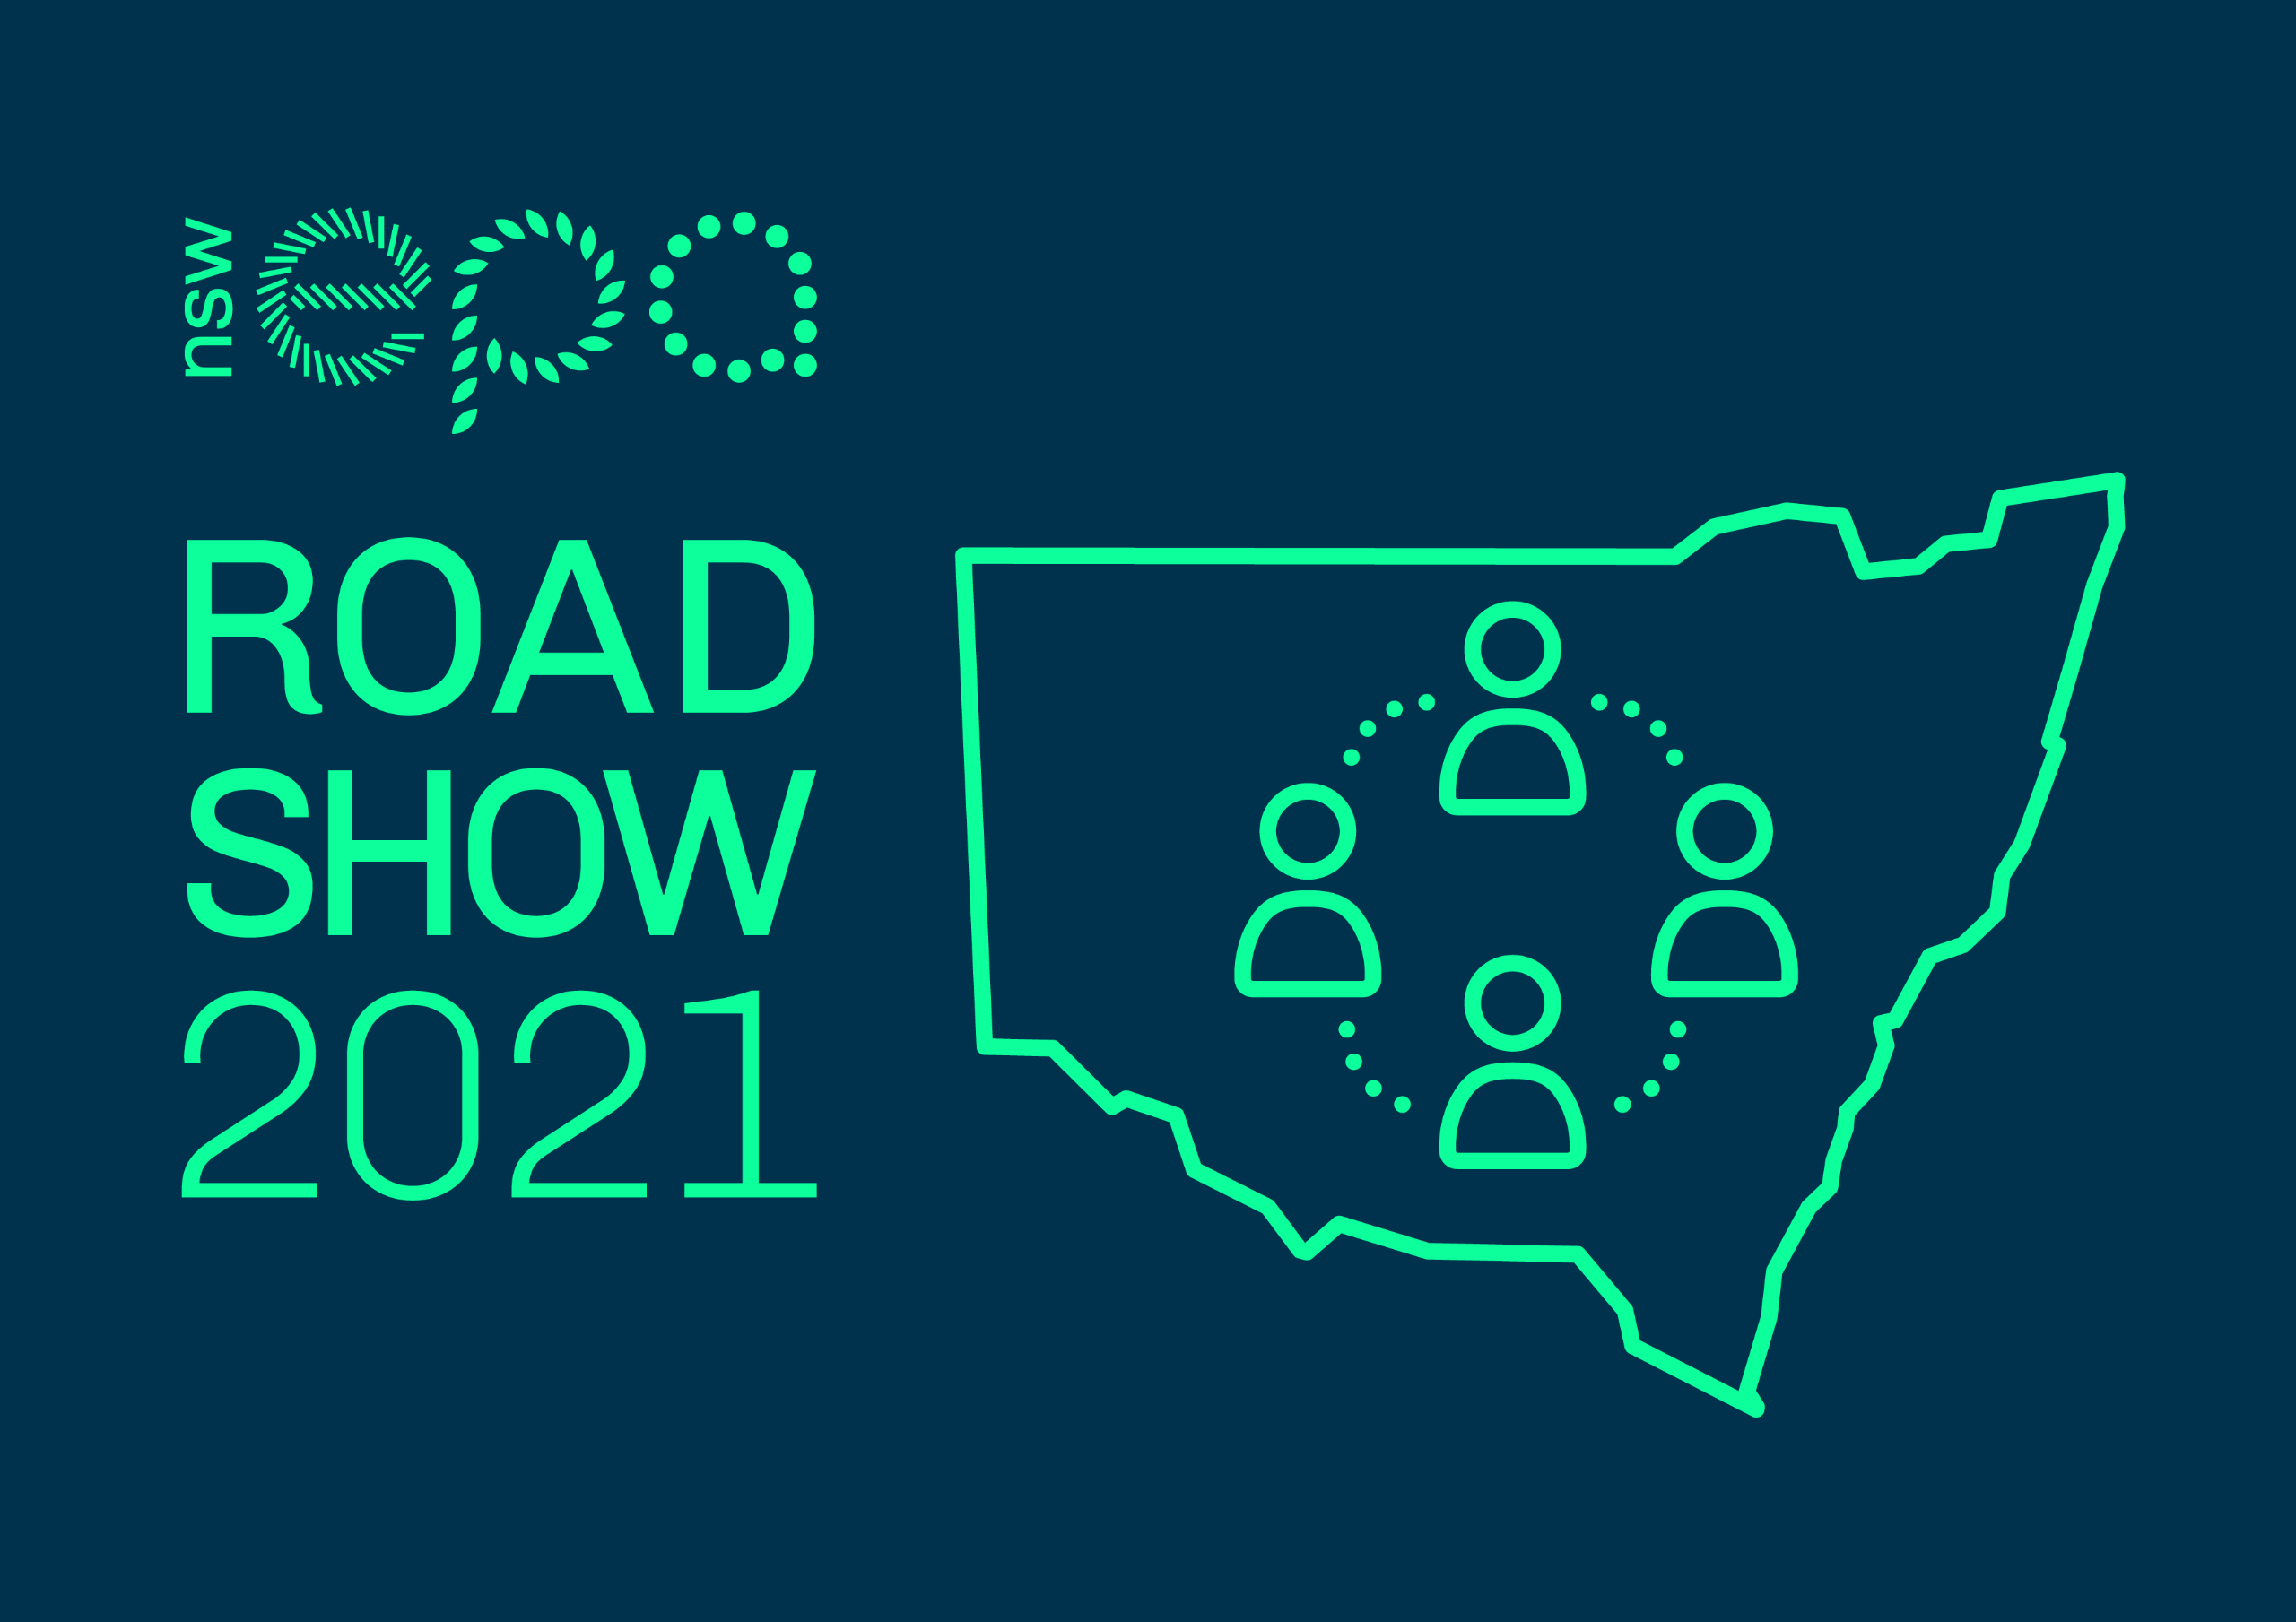 icon- text-EPA Roadshow 2021 with outline of NSW and 4 torso figures around a tablefigures